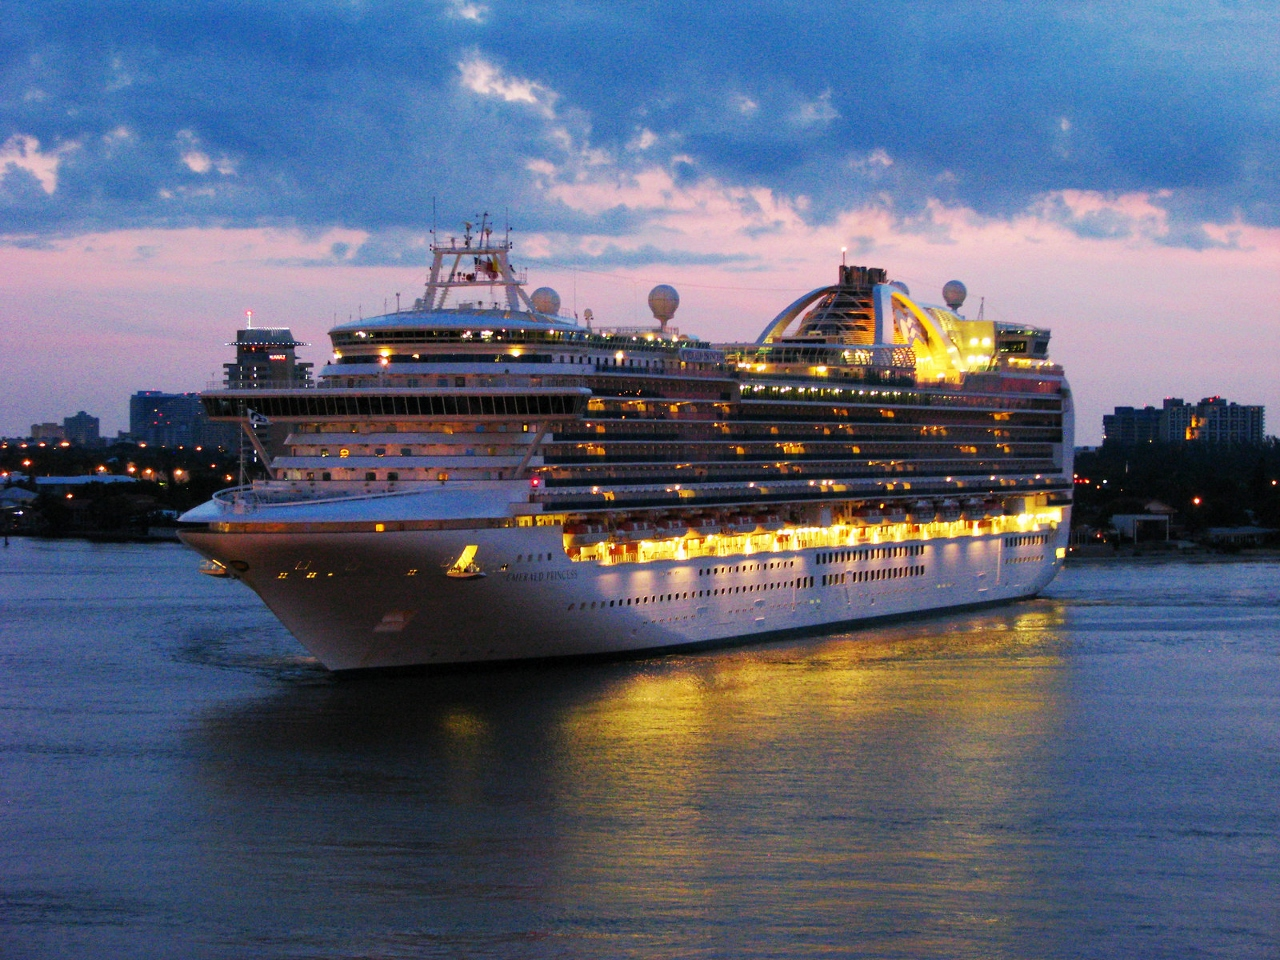 Emerald Princess is coming to Sydney in 2016